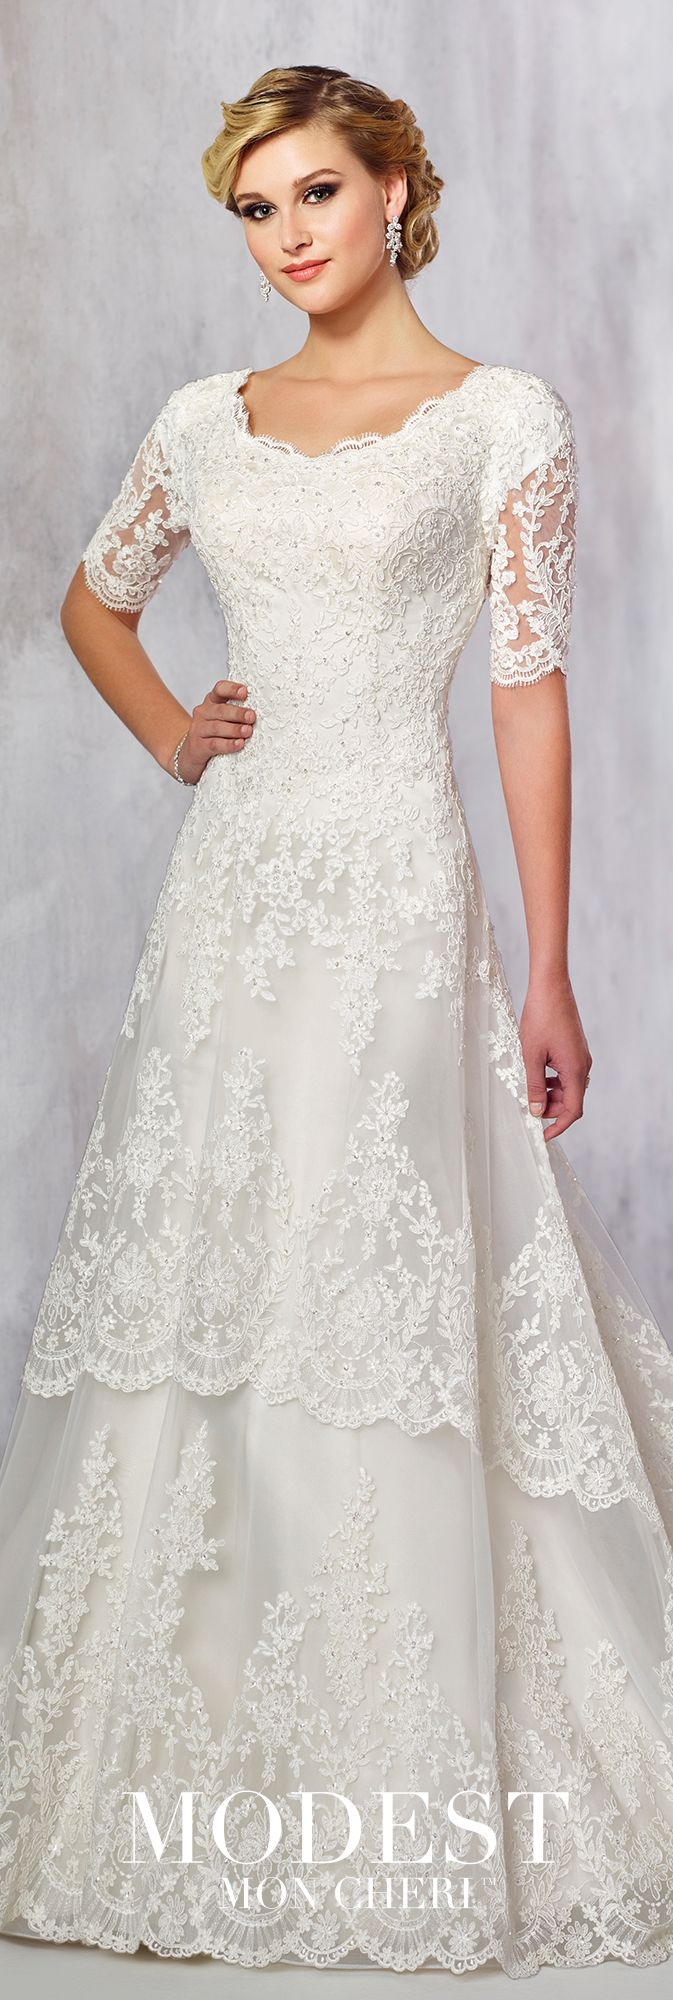 Modest Wedding Dresses Fall 2017 Collection - Style TR21715 - short sleeve lace A-line wedding dress with two-tiered scalloped skirt